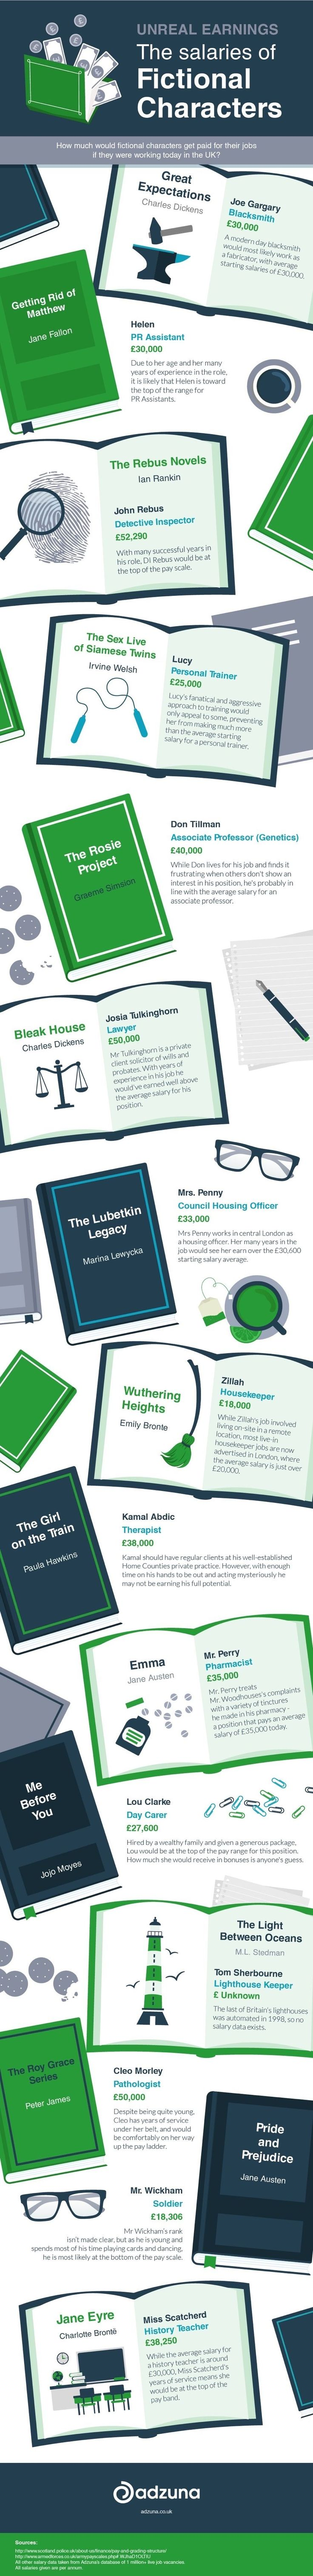 How much would fictional characters from books earn today? Check out this infographic